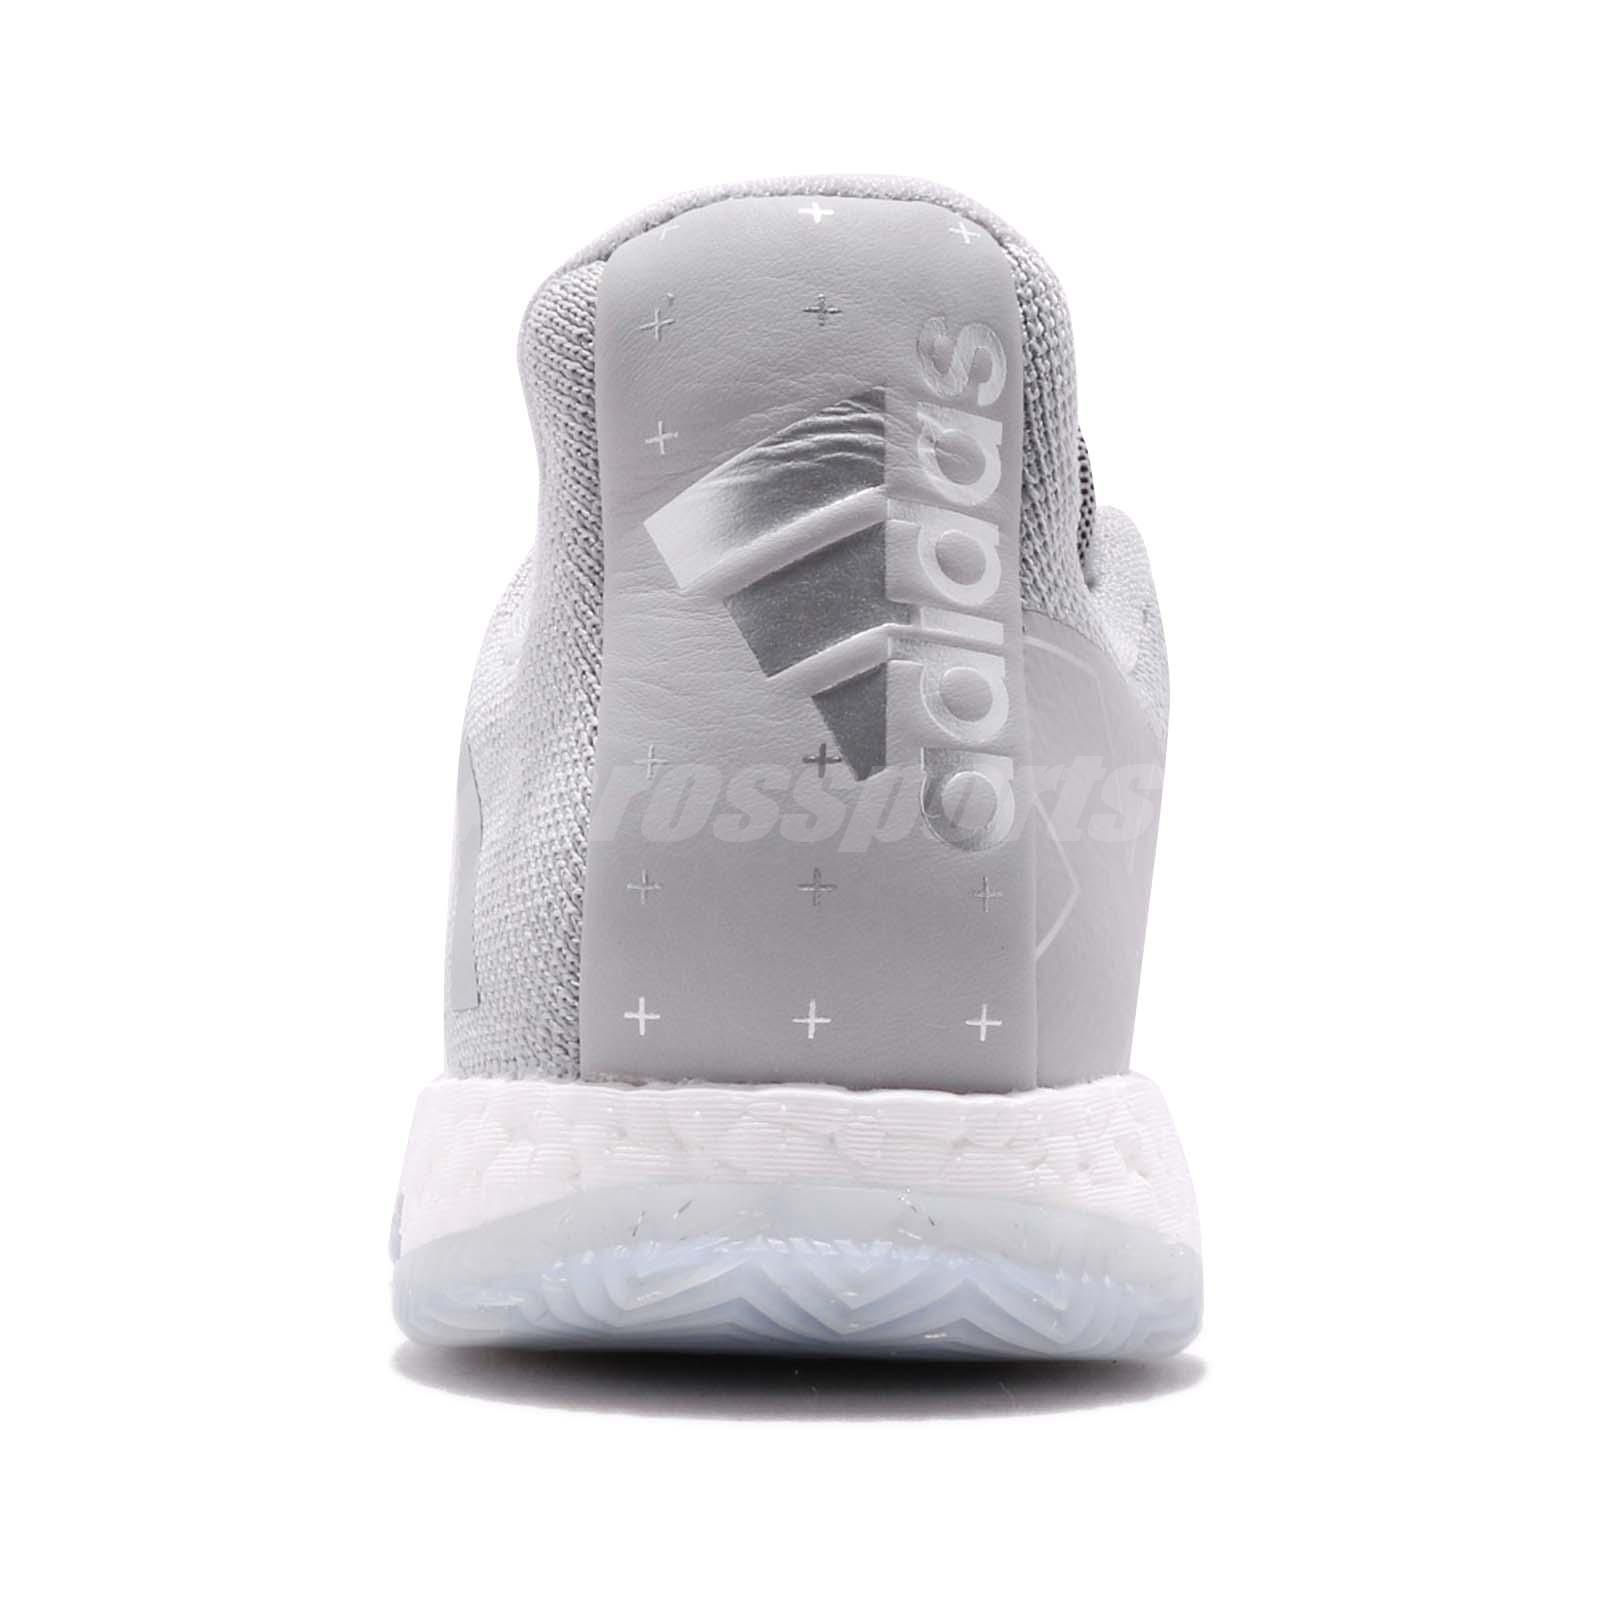 c1544cc41f96 adidas Harden Vol. 3 Boost James Grey White Men Basketball Shoes ...